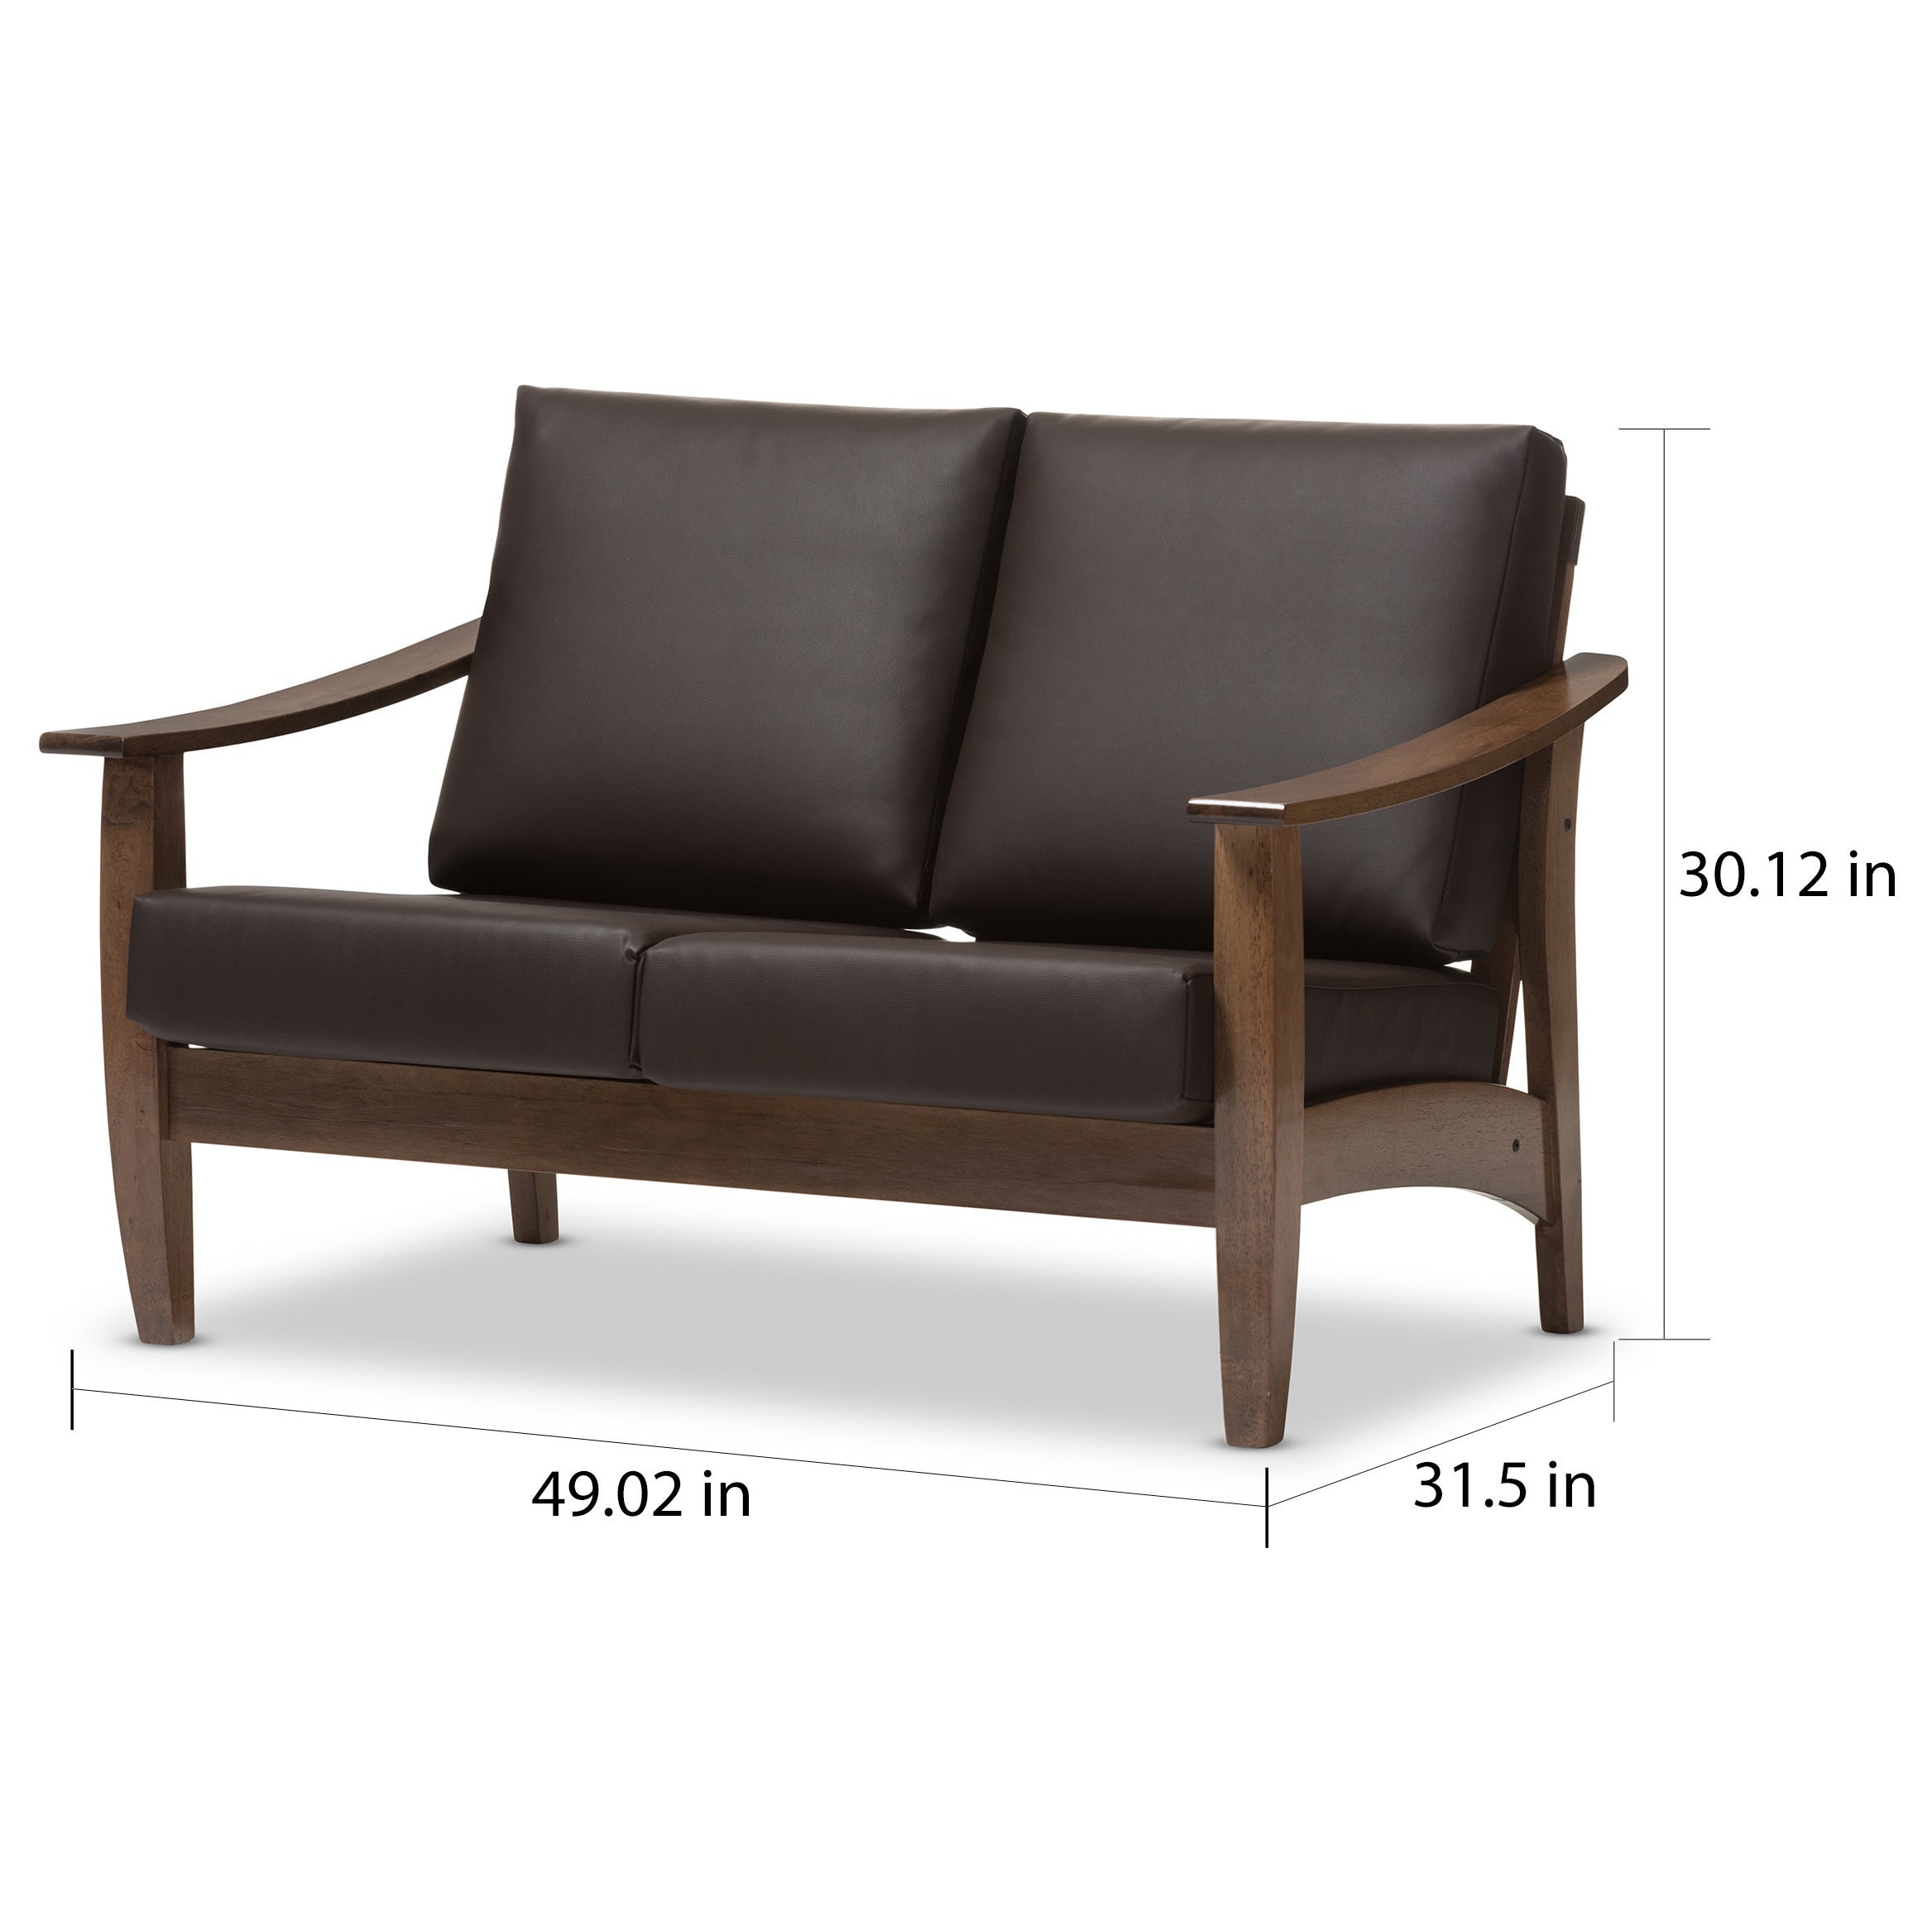 Baxton Studio Phanessa Mid Century Modern Dark Brown Faux Leather Loveseat    Free Shipping Today   Overstock.com   18456758